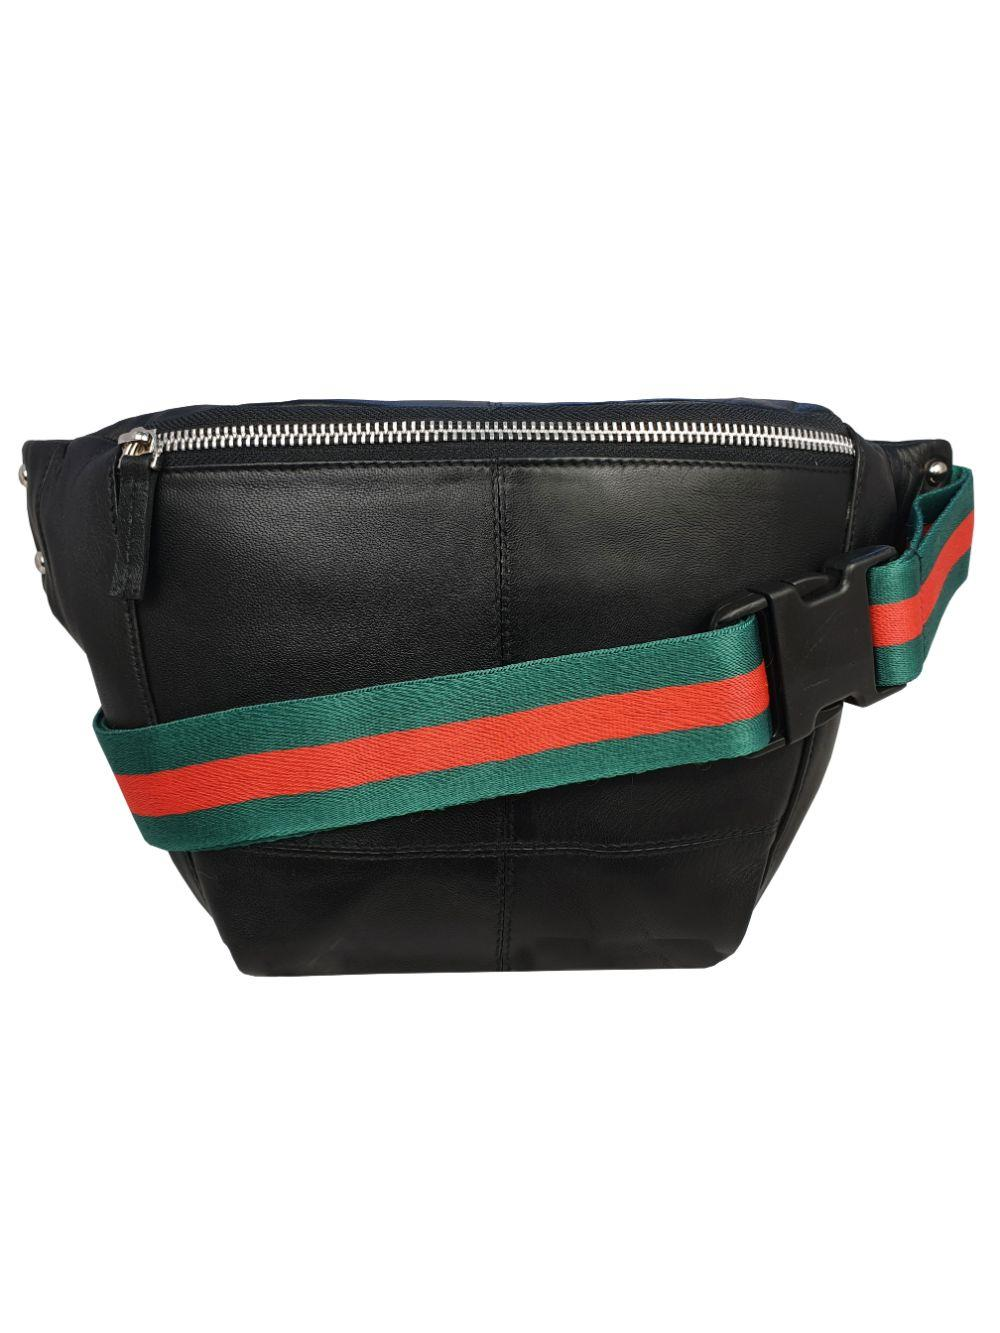 Gucci Style Black Leather Bumbag RL626KGU Belt